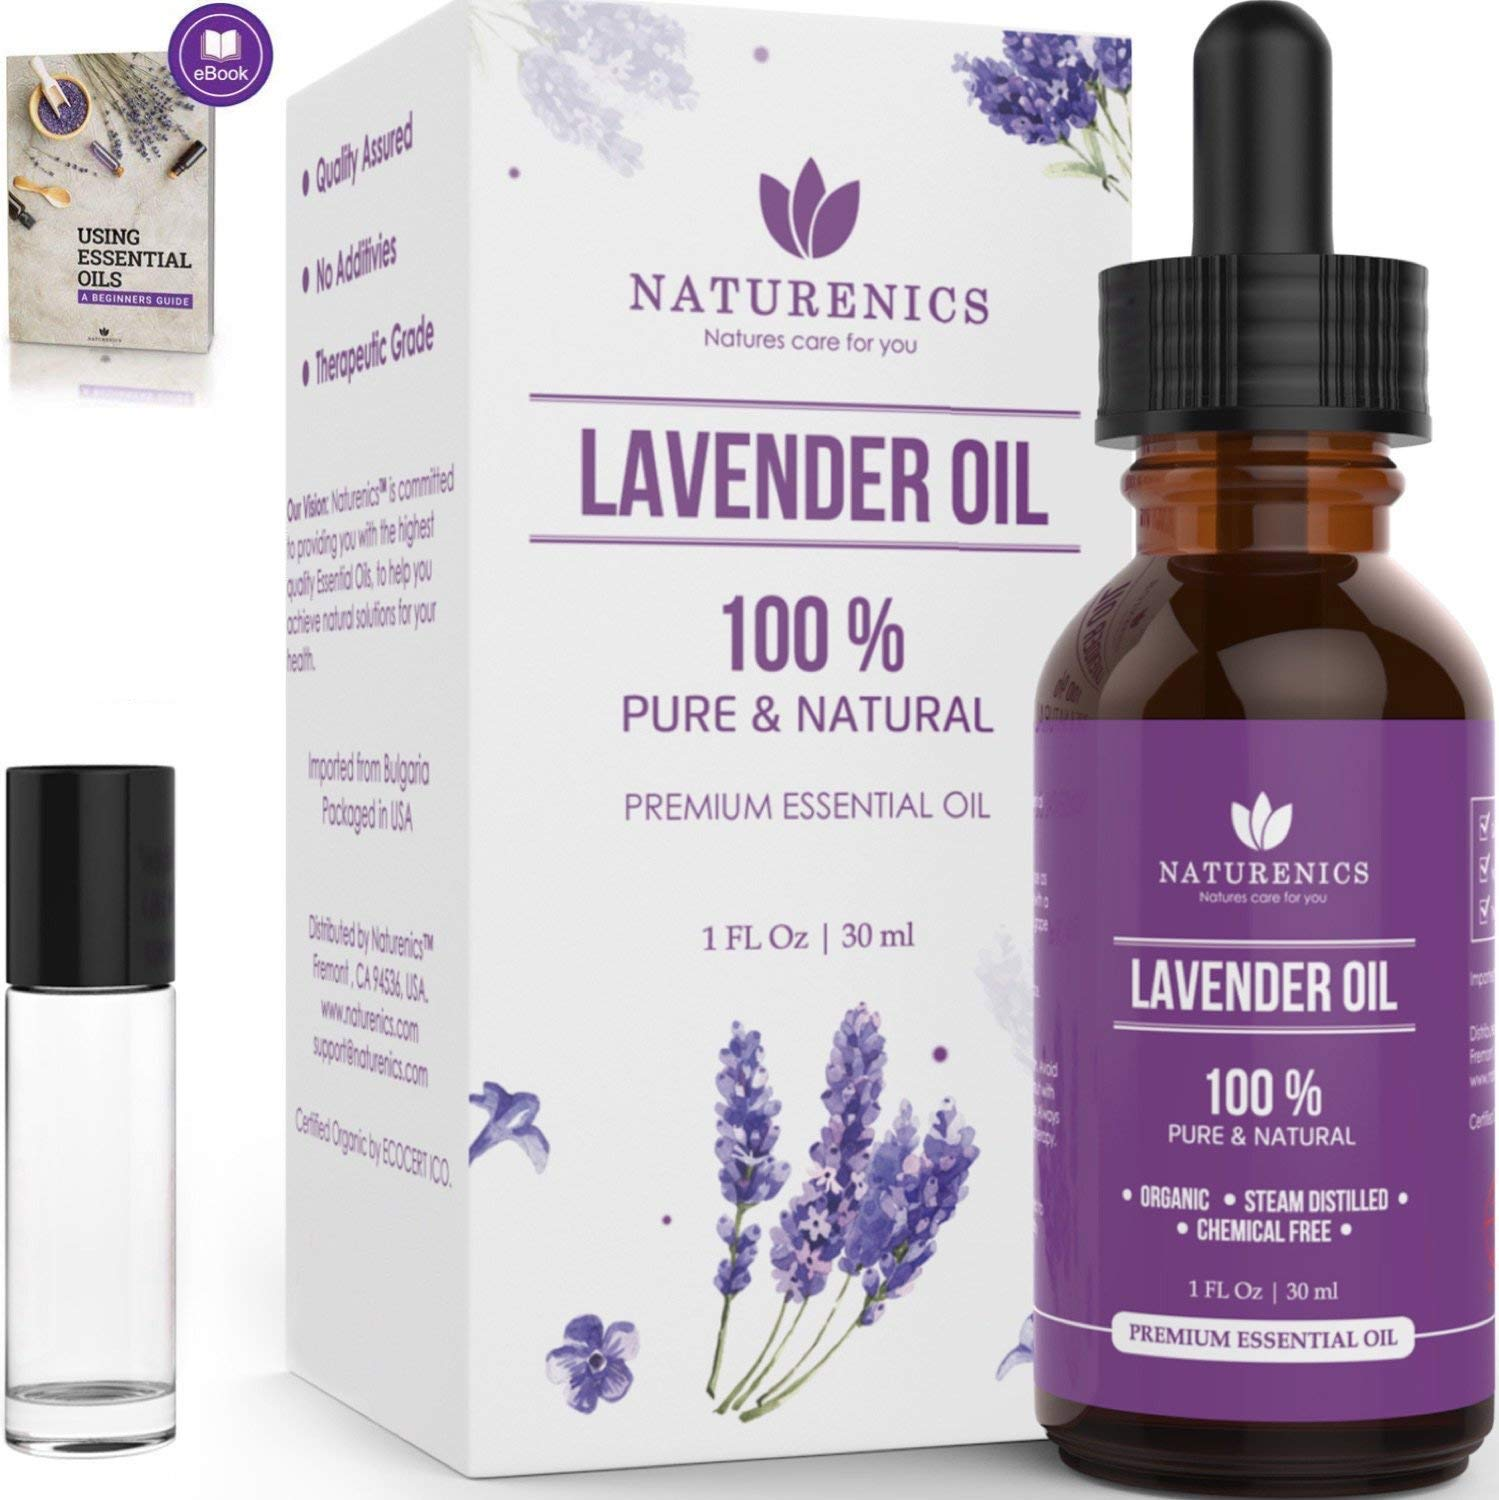 Naturenics Premium Lavender Essential Oil - 100% Undiluted Pure Lavender Oil Therapeutic Grade- Promote Peaceful Sleep, Relaxation, Tension Relief- For Diffuser & Topical Use- Roll On Bottle & eBook